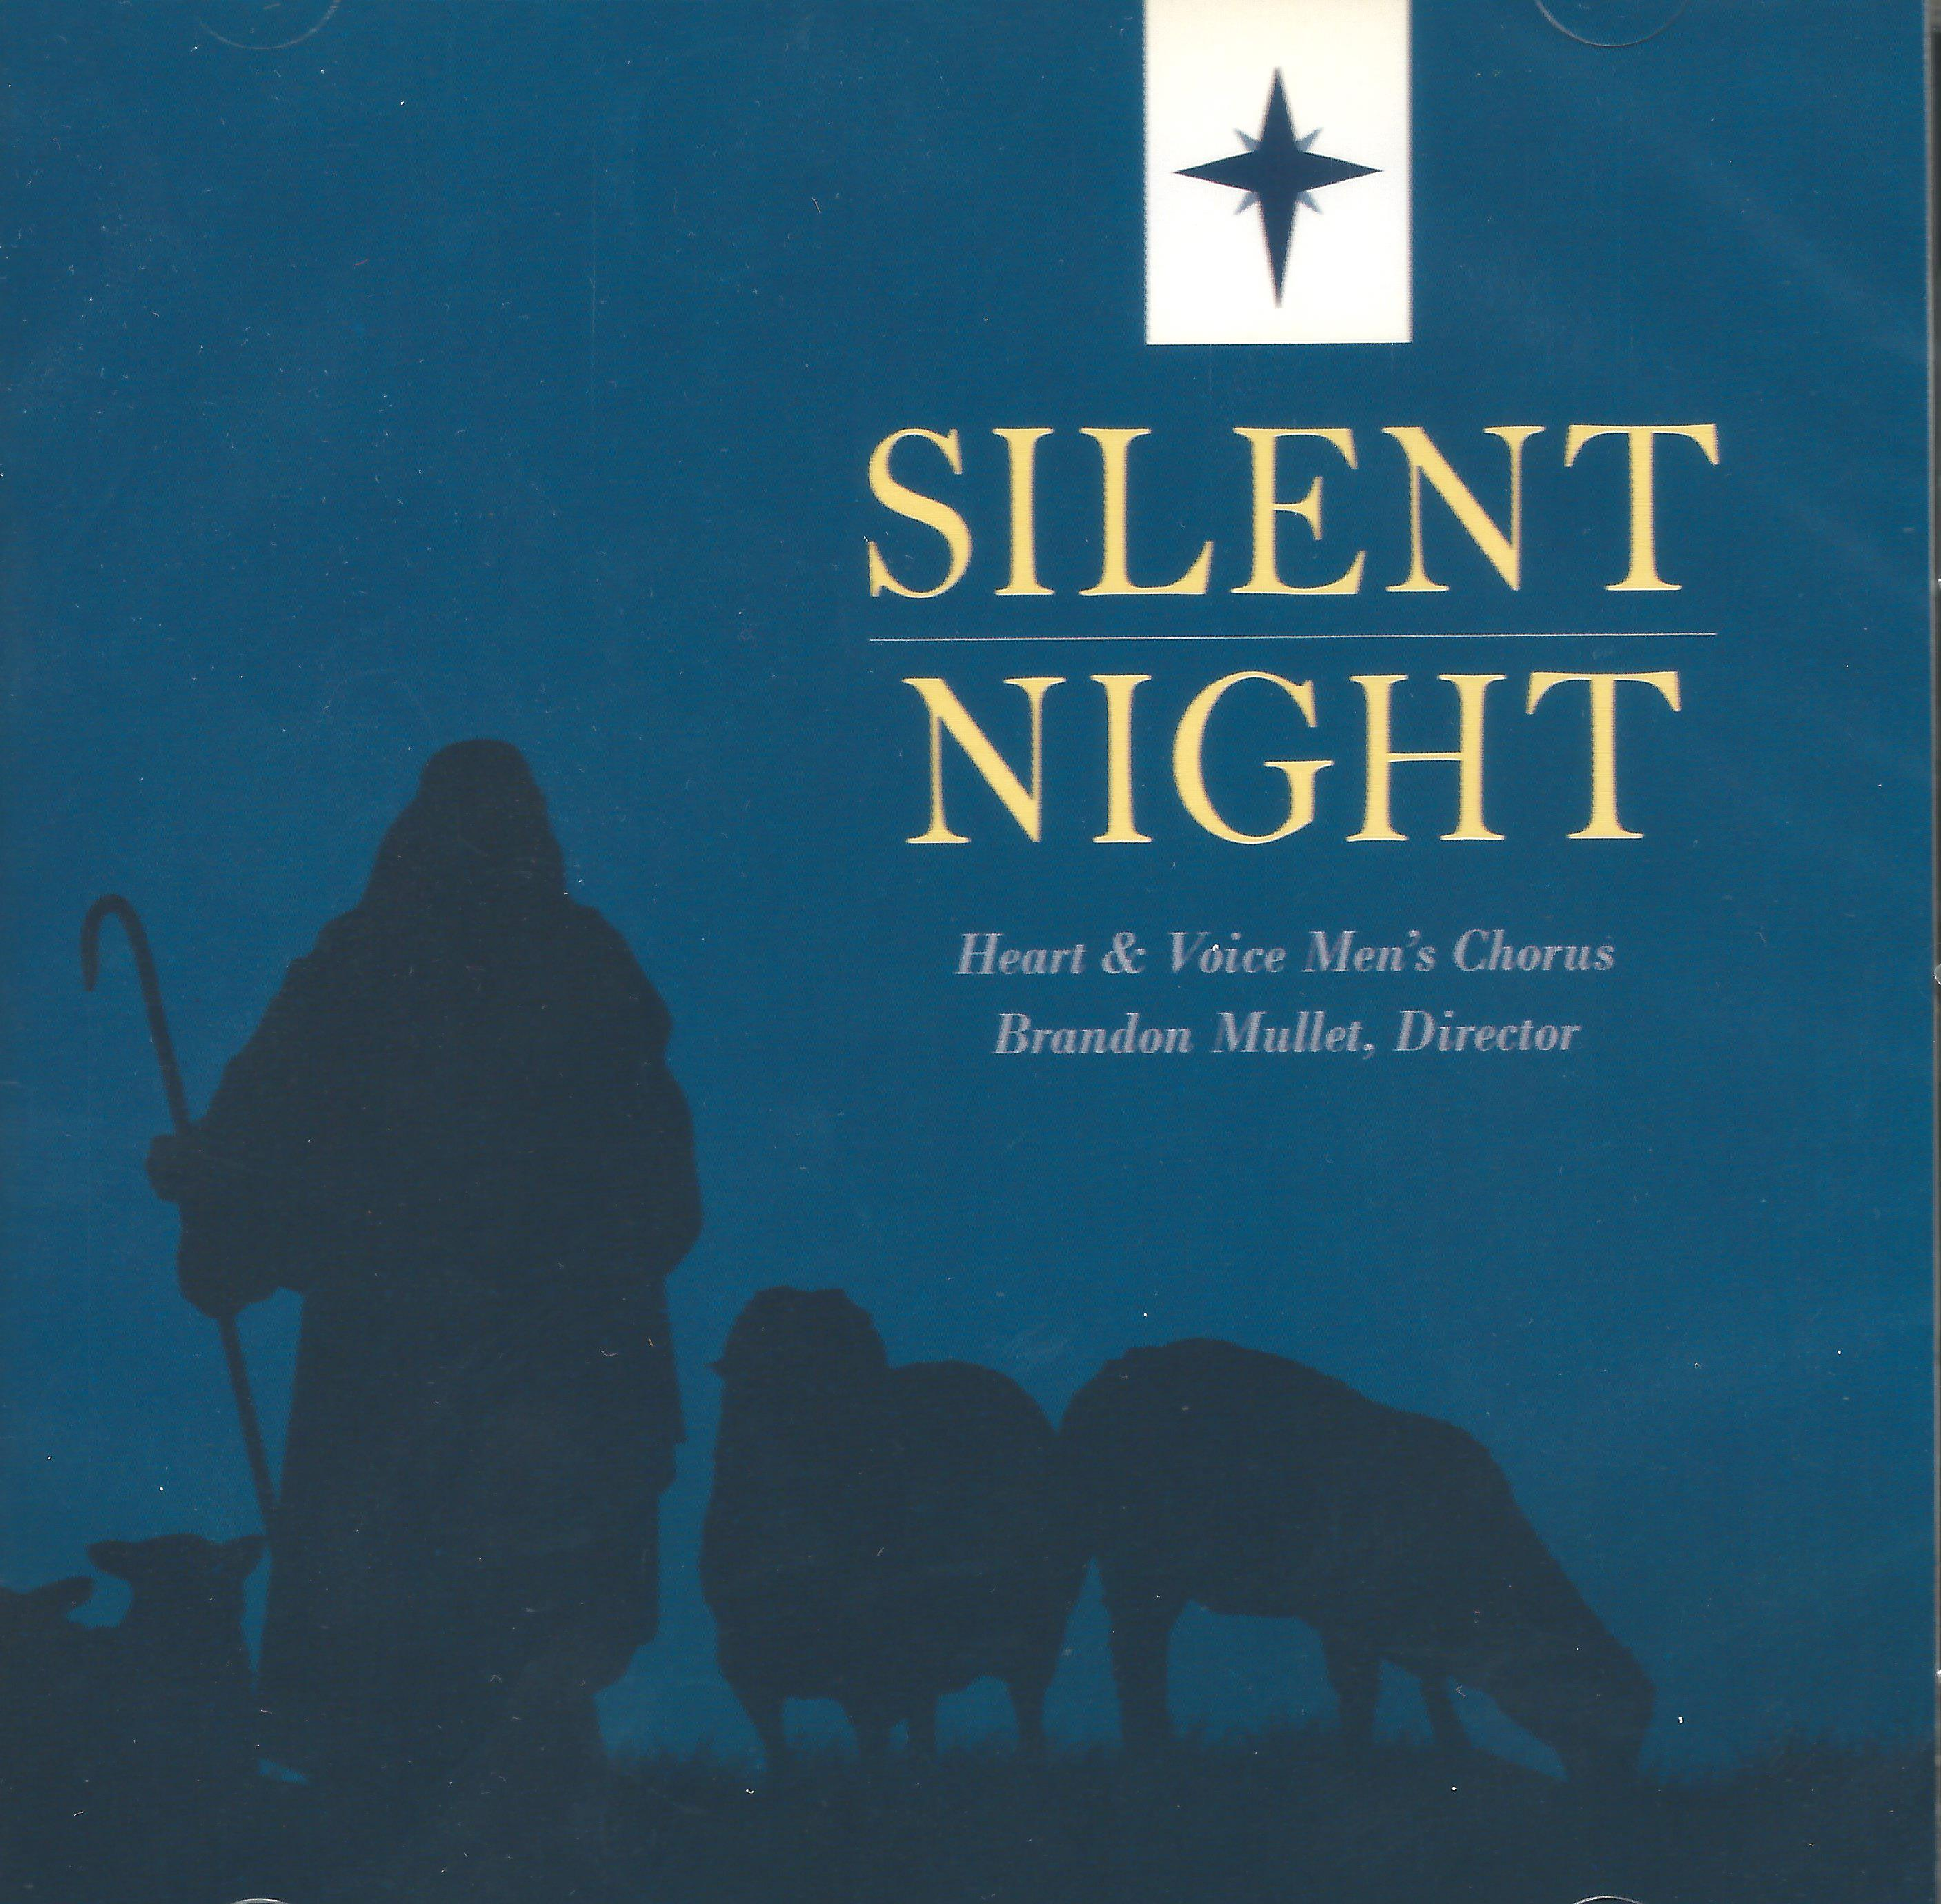 SILENT NIGHT Heart and Voice